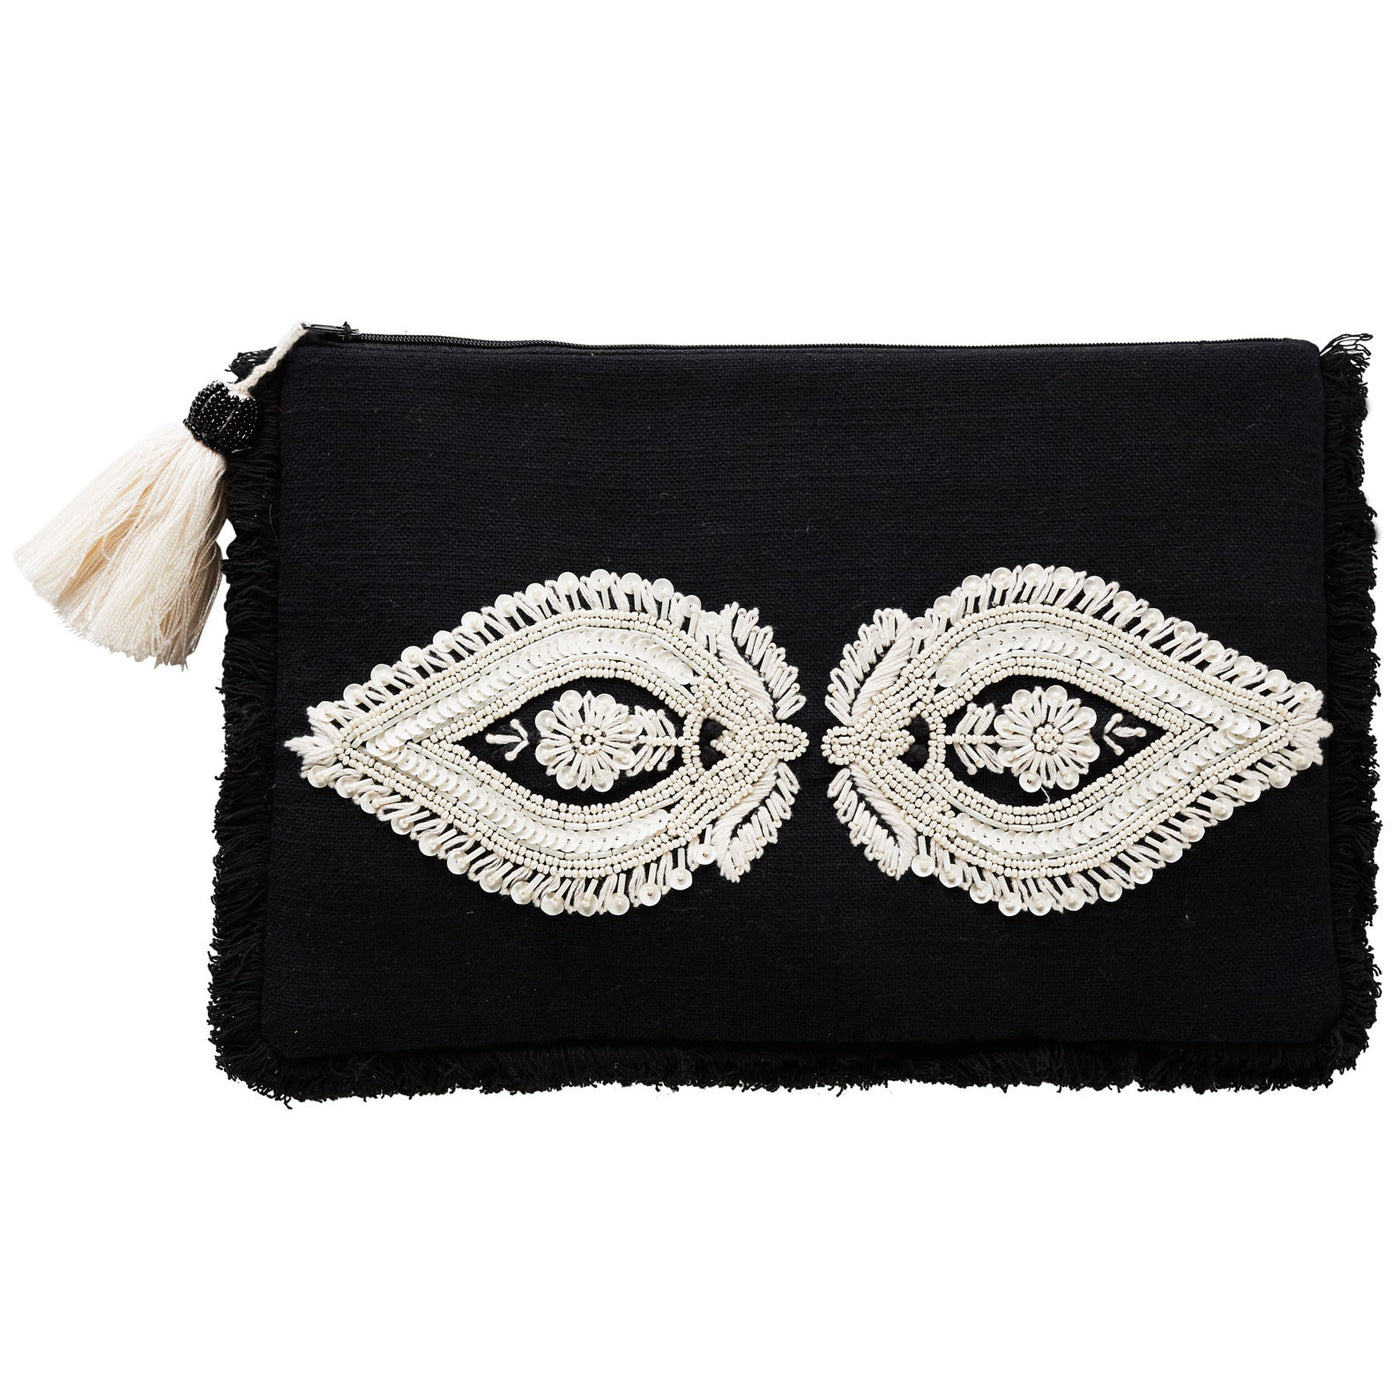 Bartley Caraway Clutch